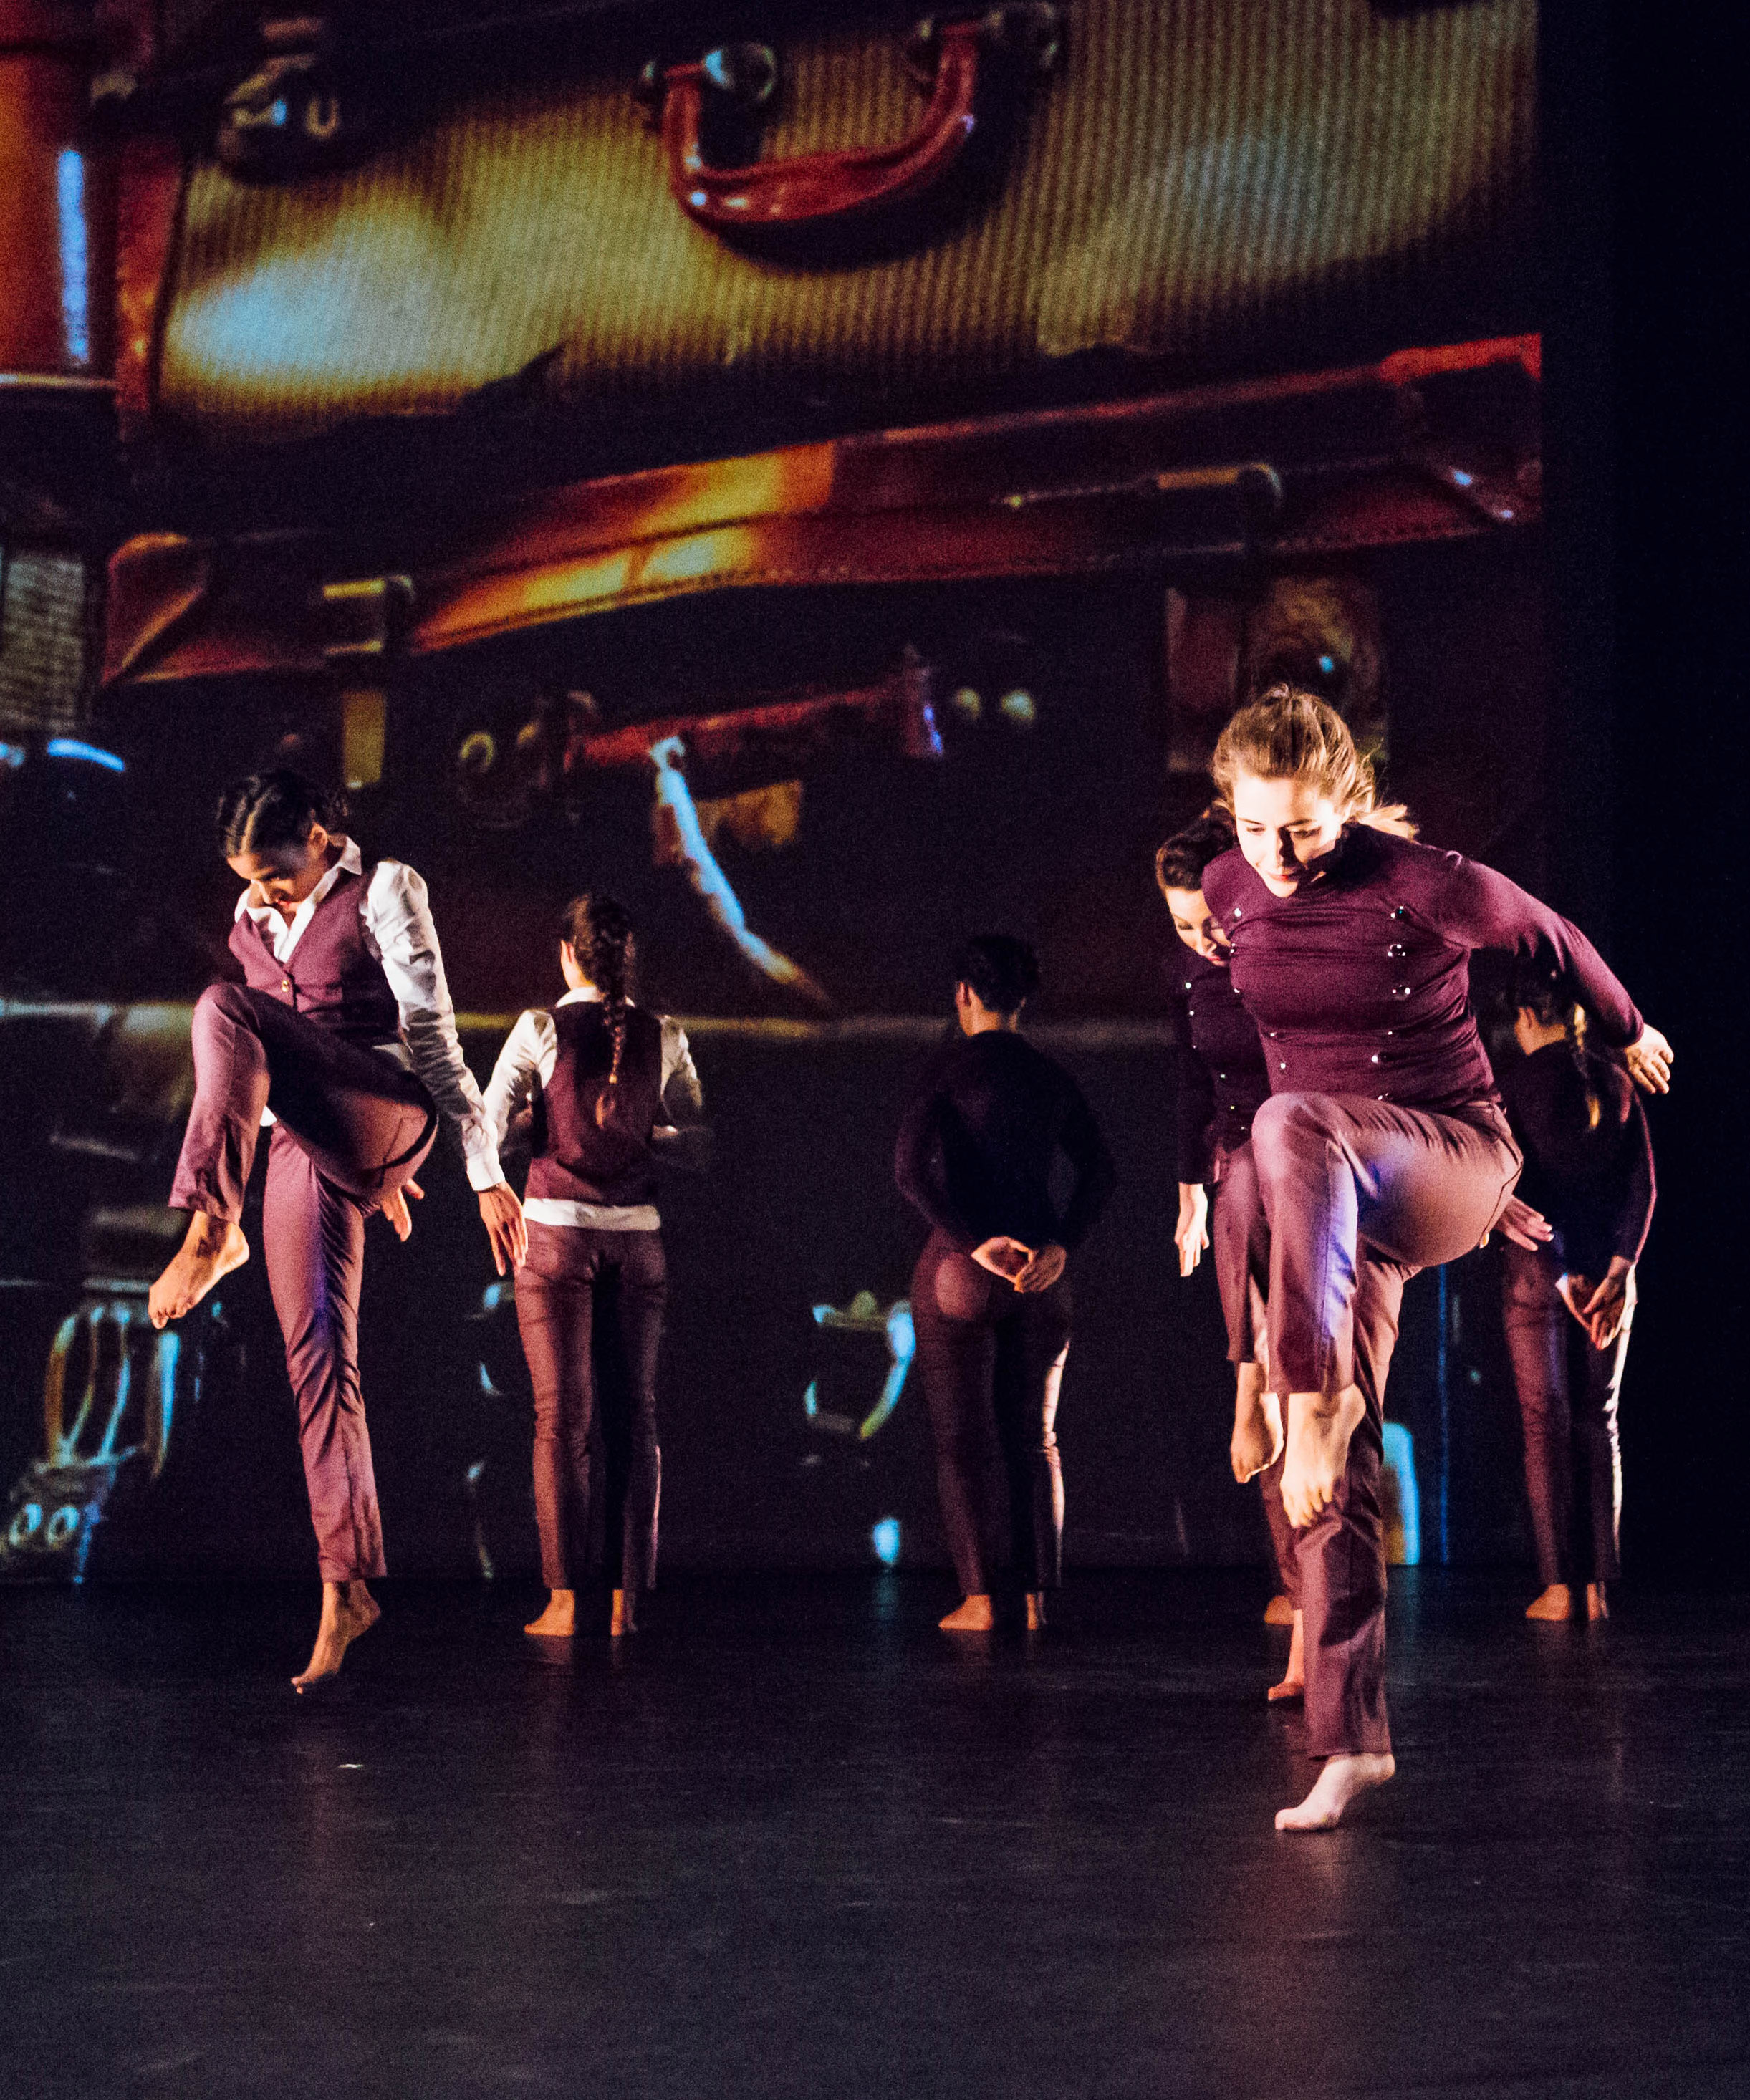 A City Academy Contemporary Dance performance at Laban